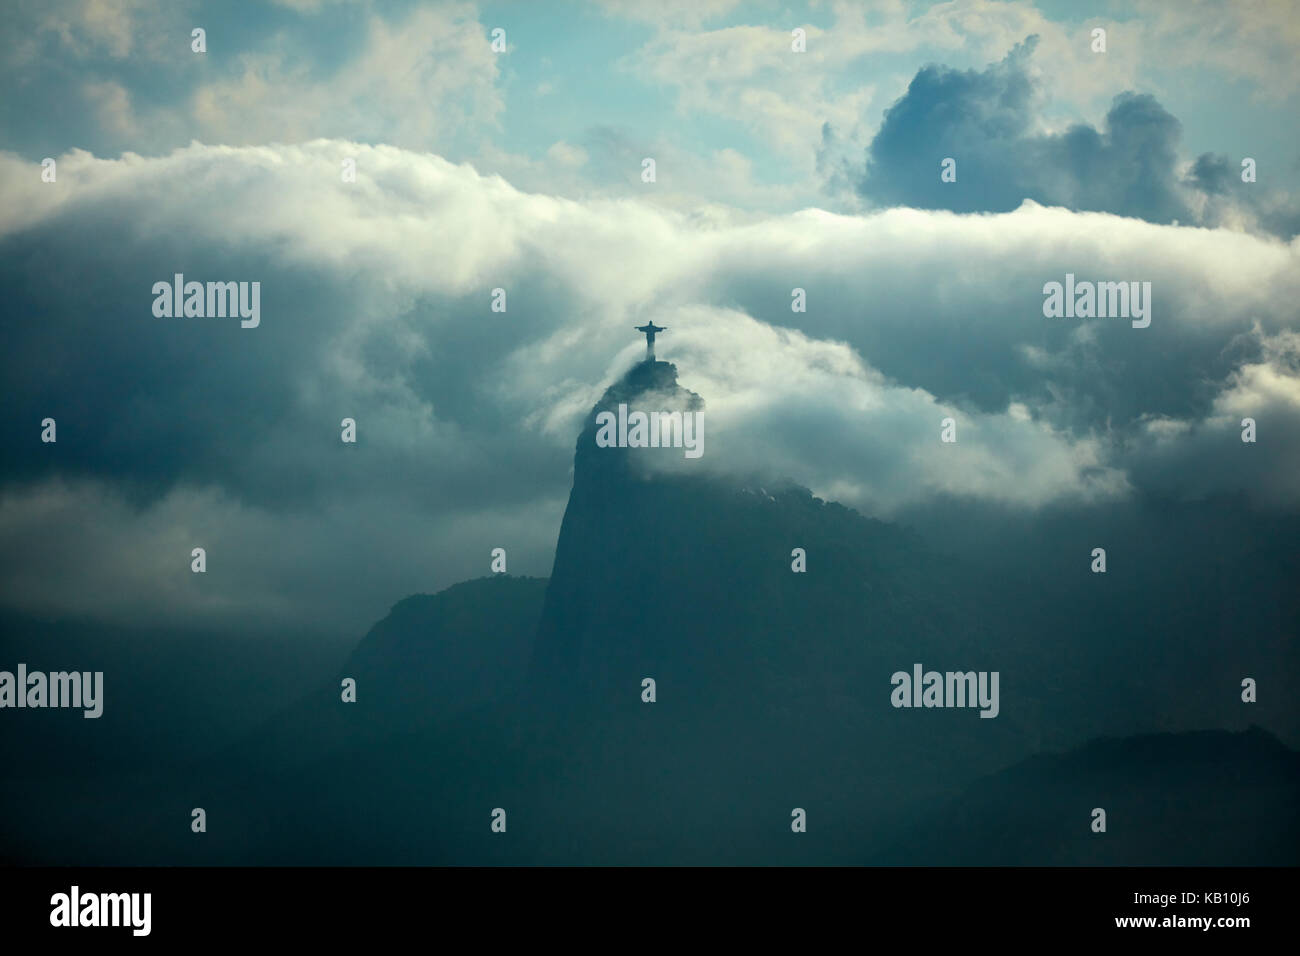 Christ the Redeemer in the clouds atop Corcovado, seen from Niteroi City Park, Niteroi, Rio de Janeiro, Brazil, - Stock Image